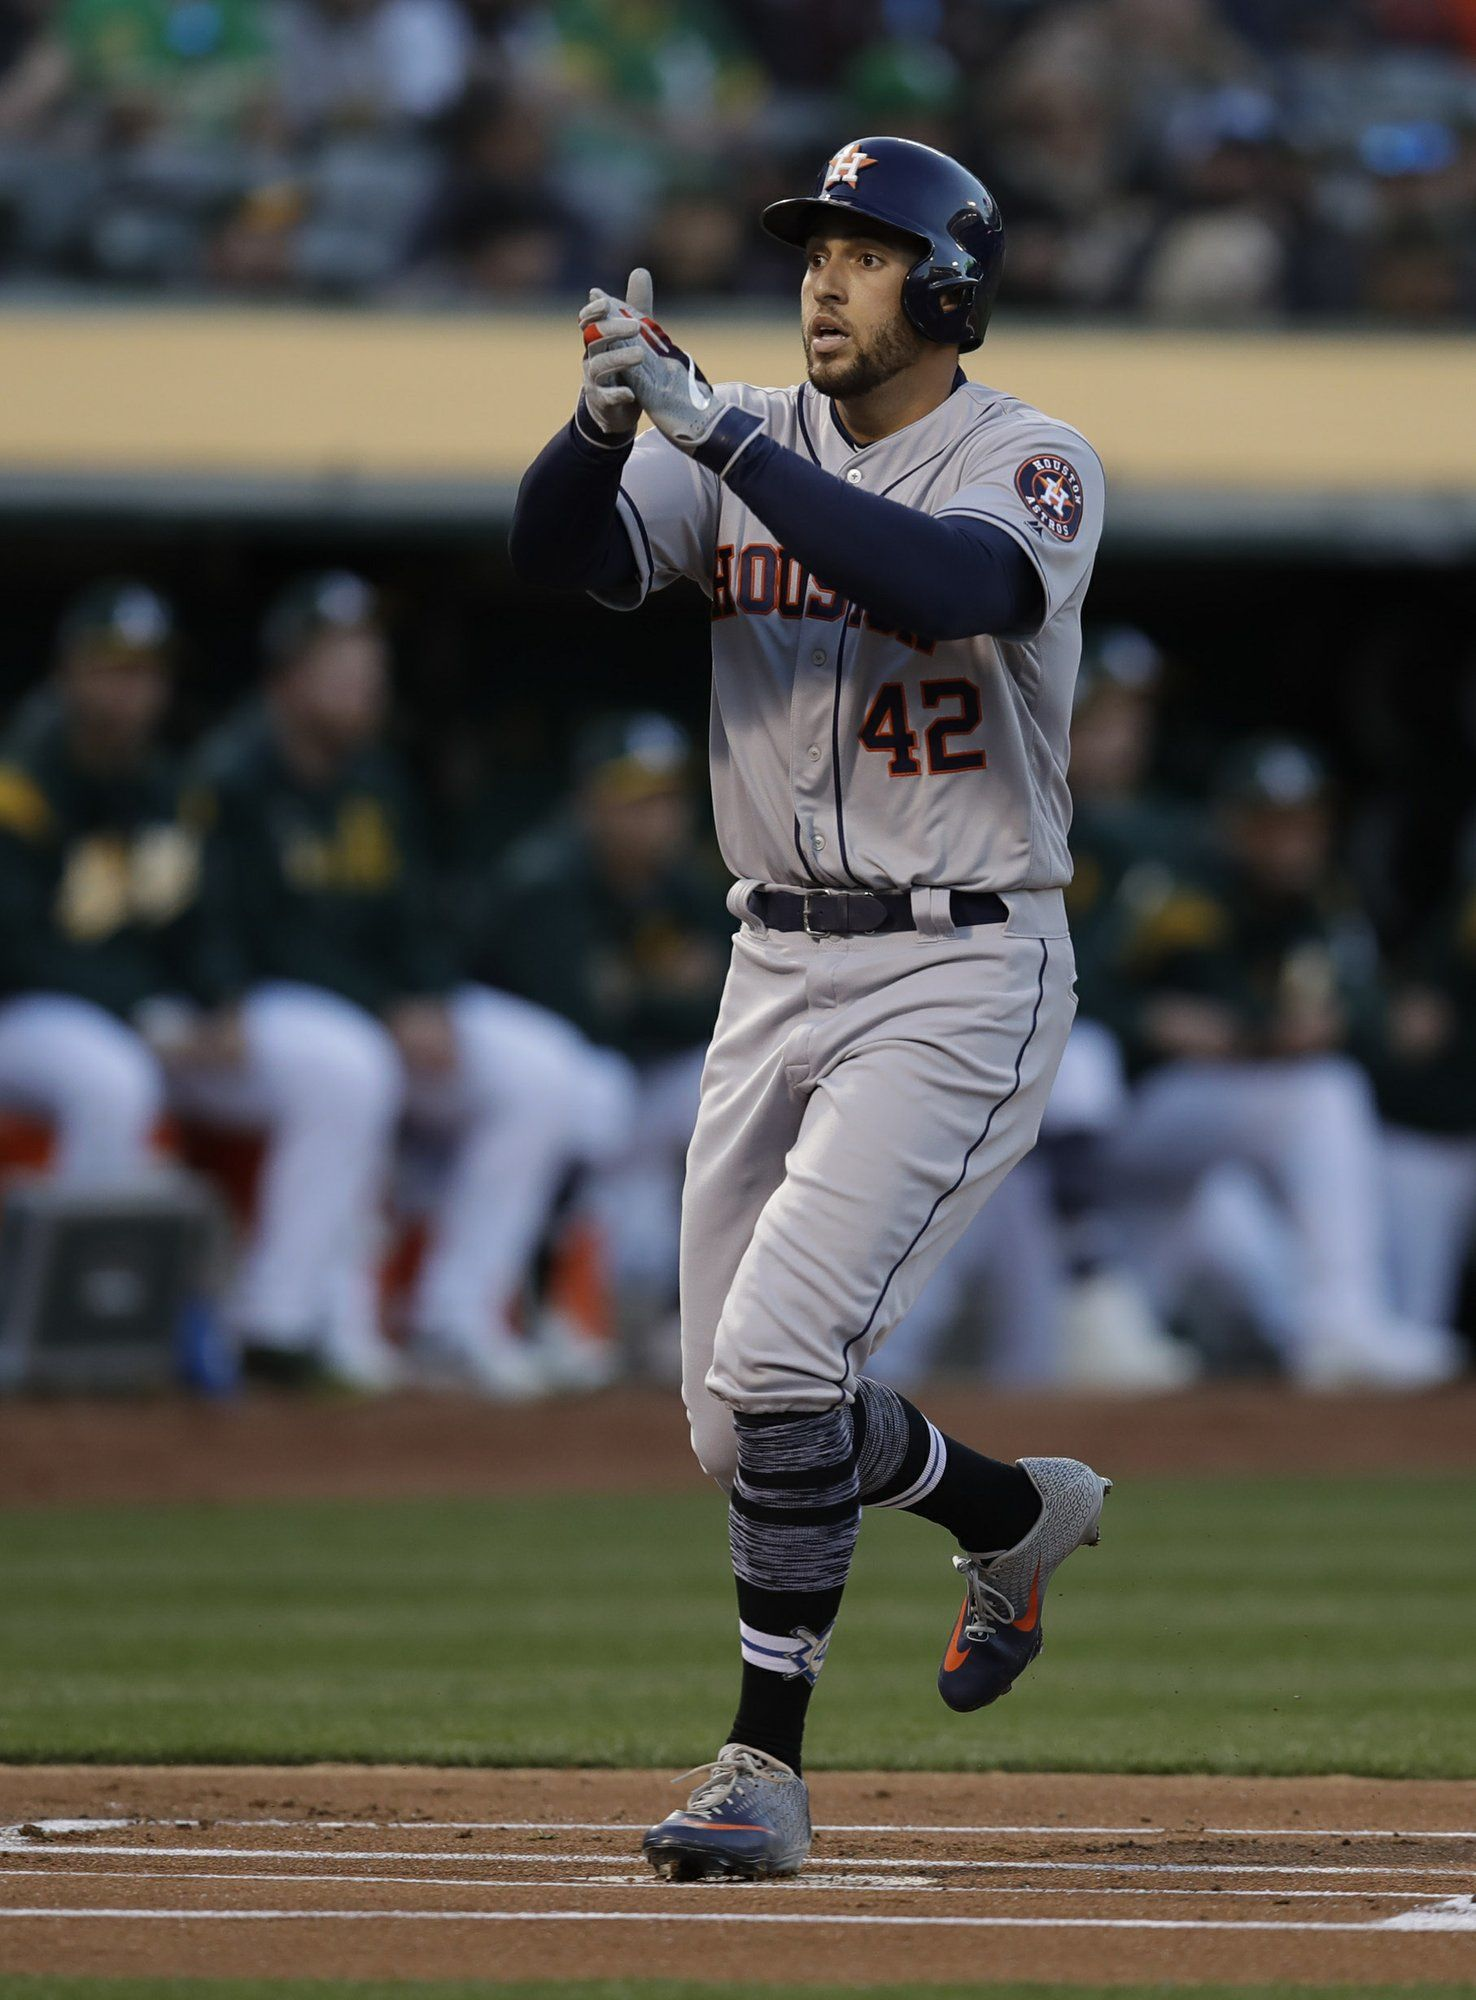 Houston Astros' George Springer celebrates after hitting a home run off Oakland Athletics' Marco Estrada in the first inning of a baseball game, Tuesday, April 16, 2019, in Oakland, Calif. (AP Photo/Ben Margot)